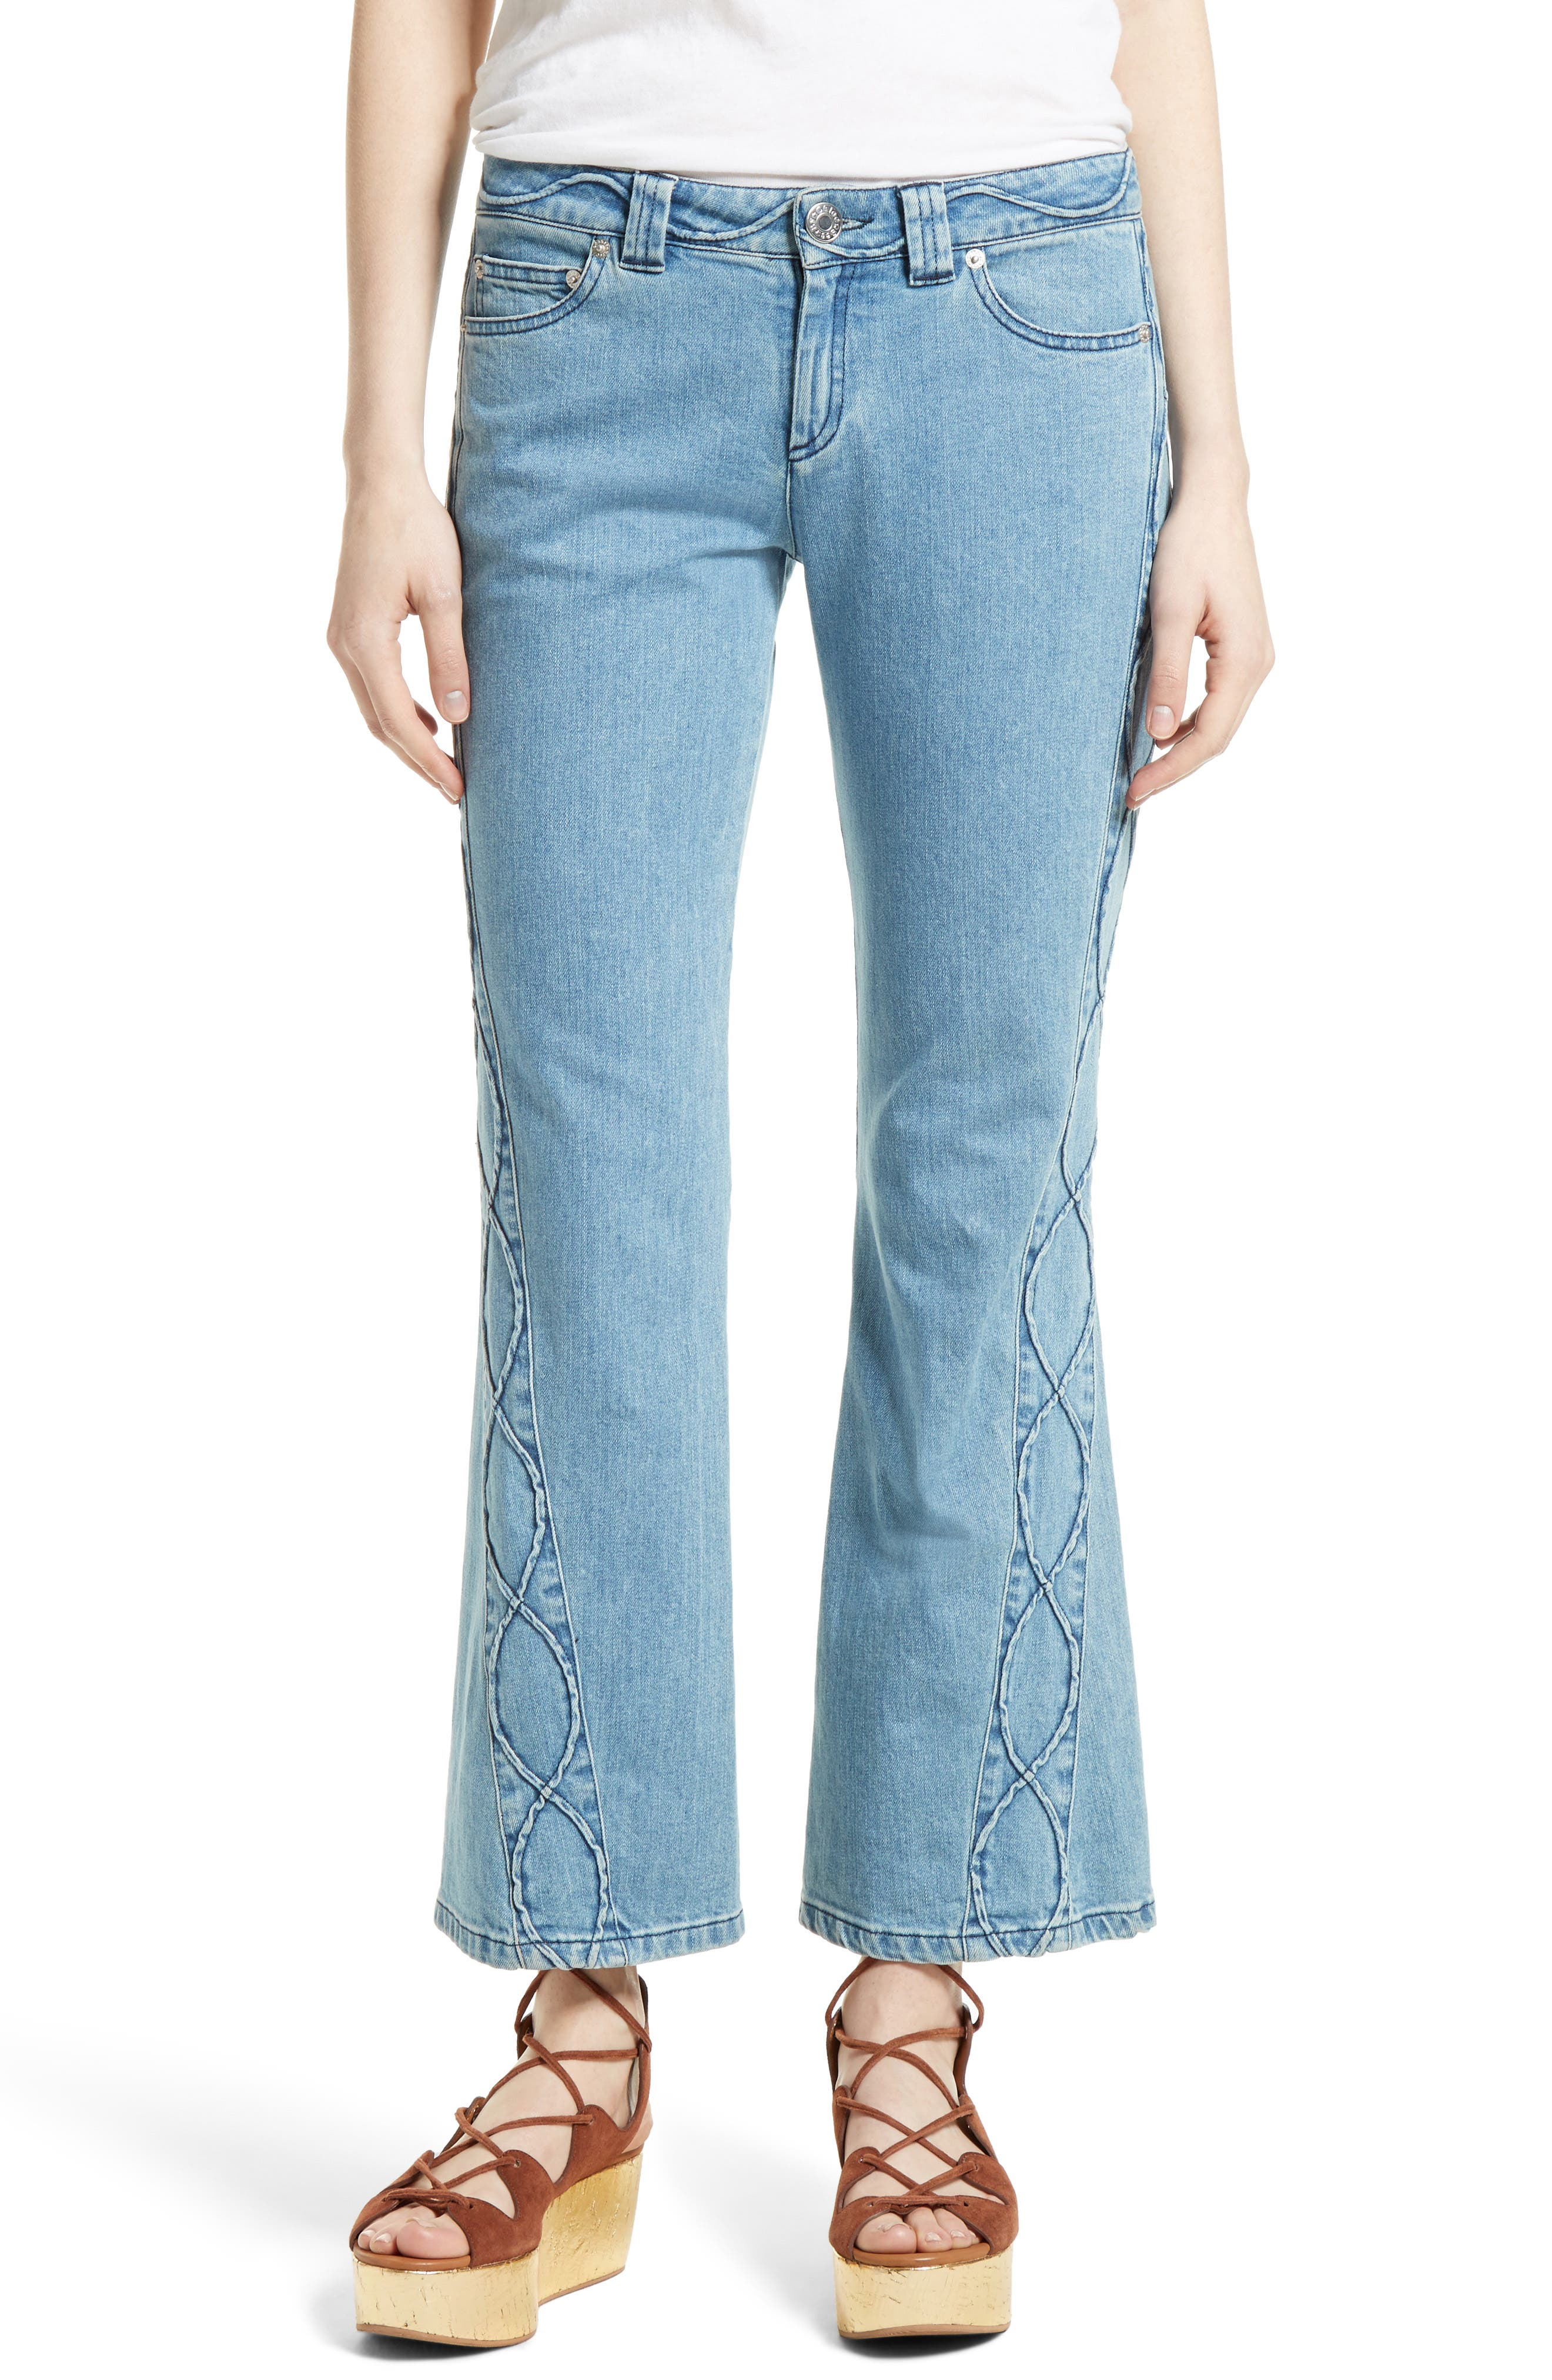 Alternate Image 1 Selected - See by Chloé Iconic Ankle Flare Jeans (Stoned Indigo)